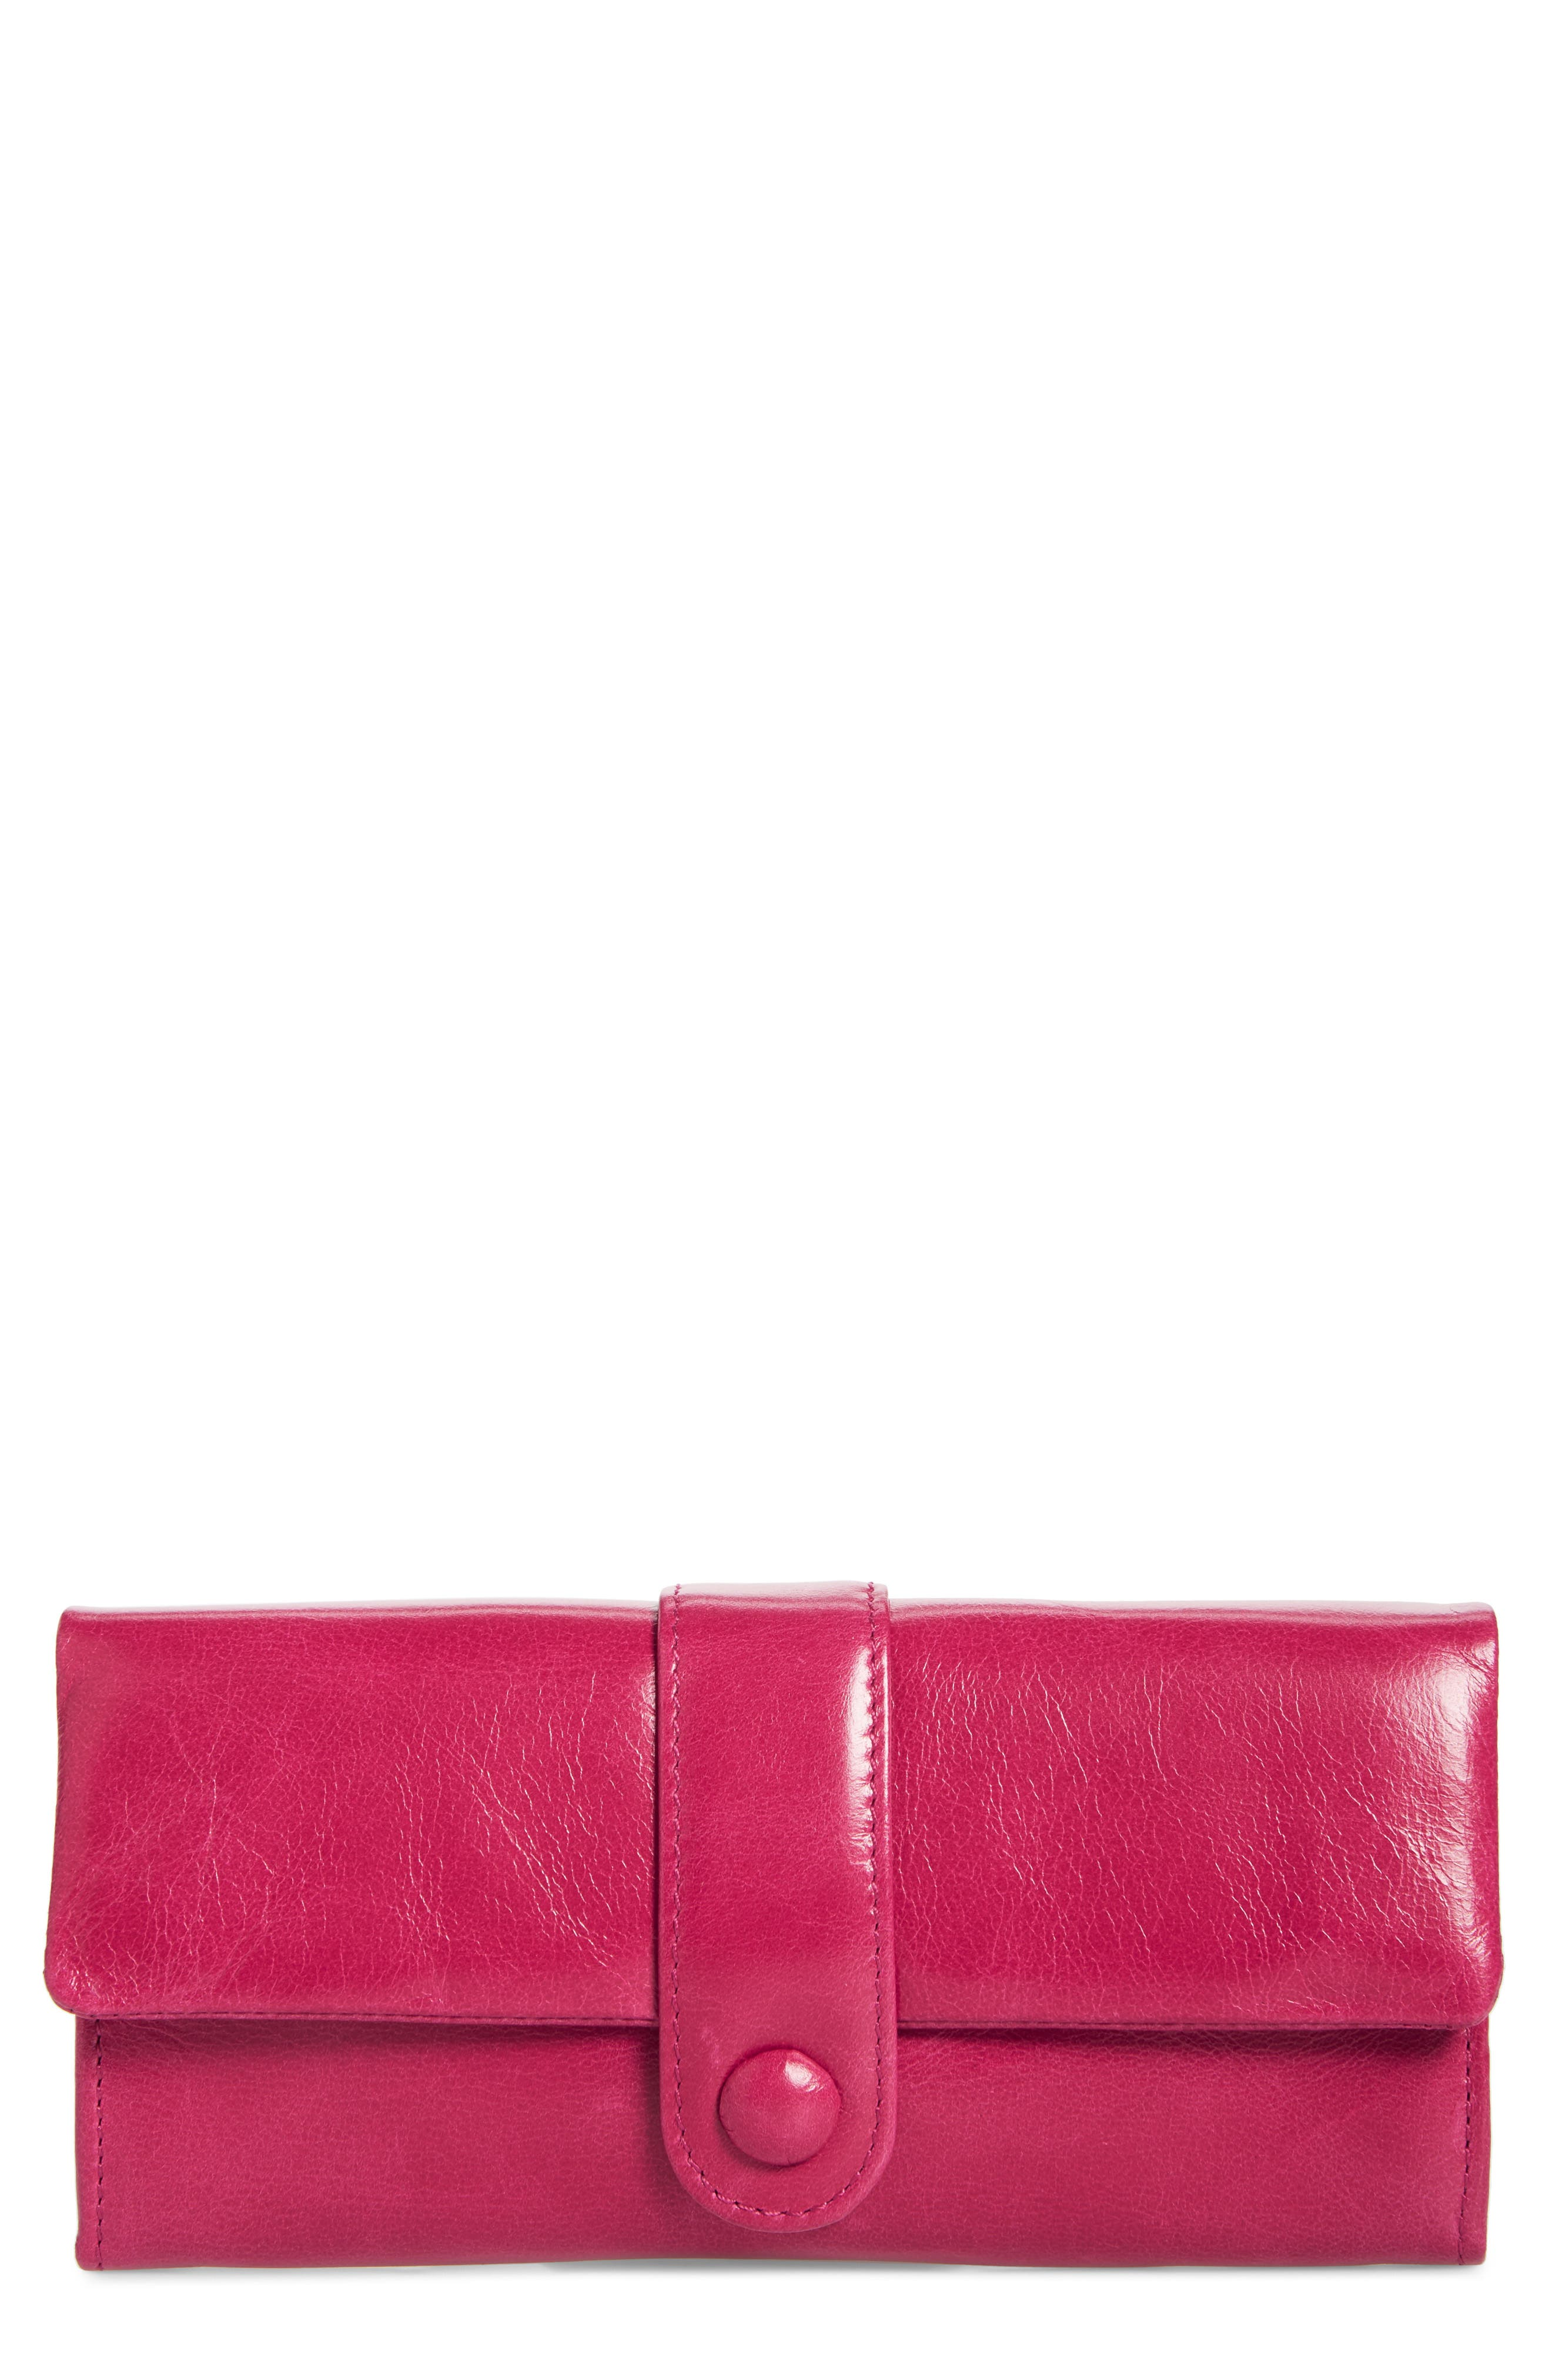 Lex Continental Leather Wallet,                             Main thumbnail 1, color,                             Fuchsia